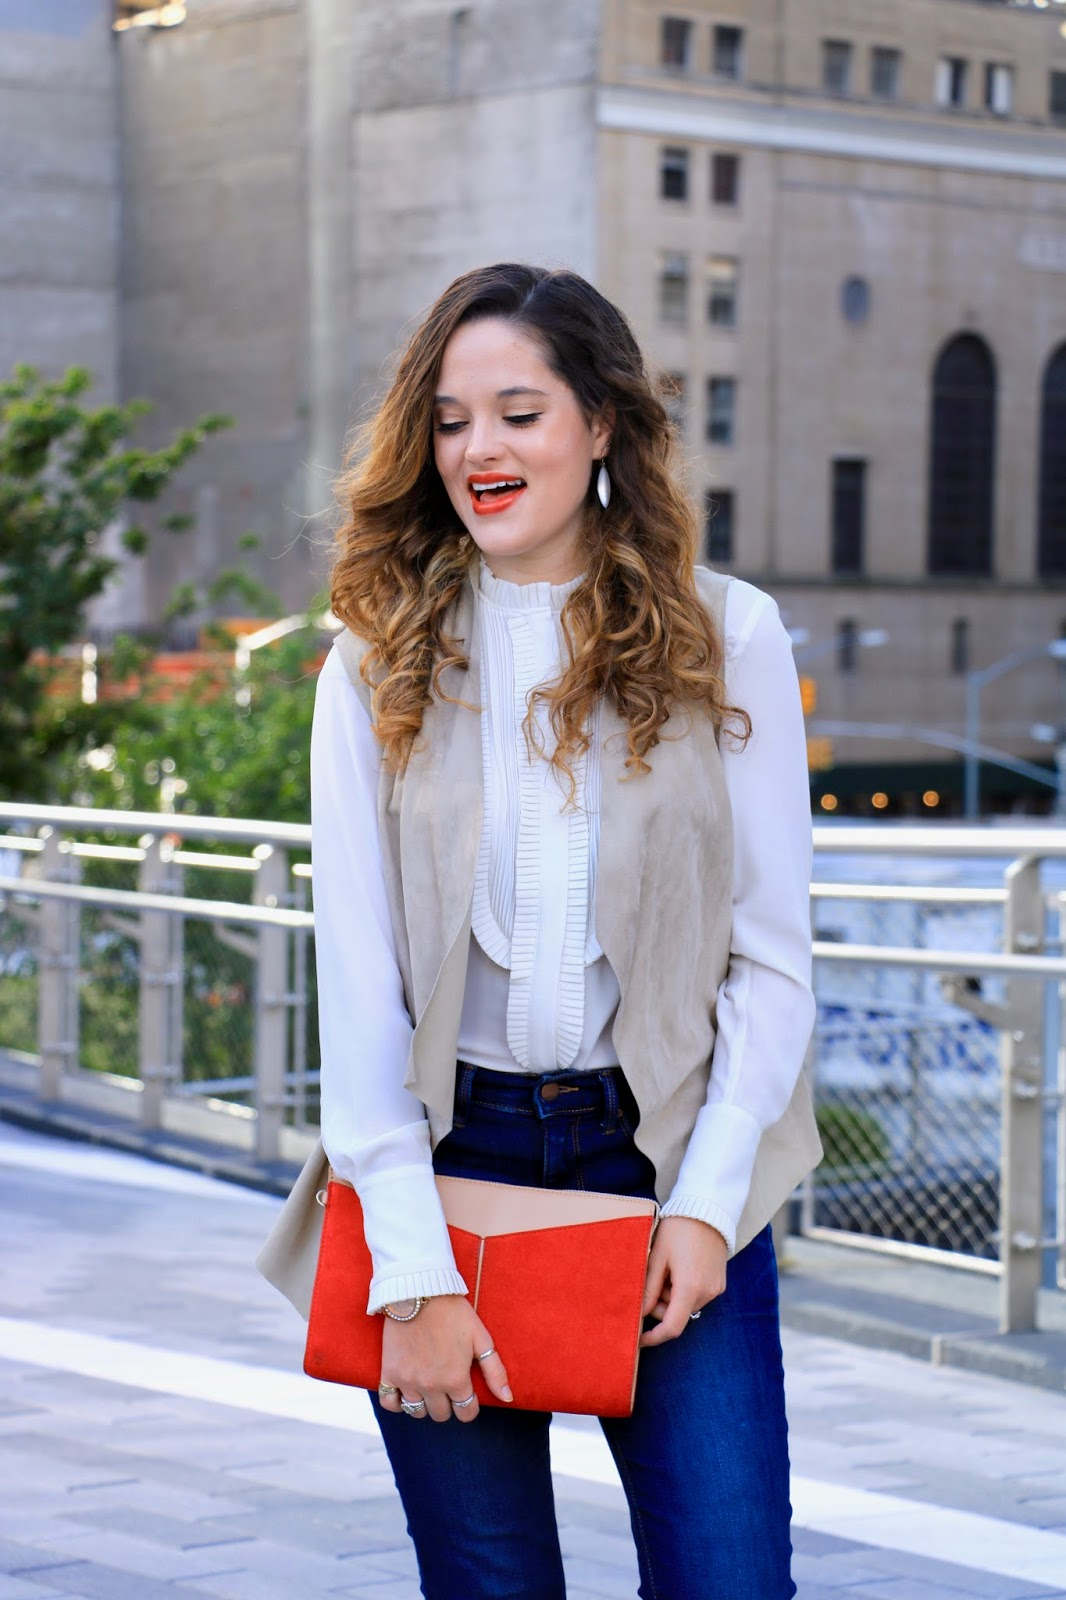 Nyc fashion blogger Kathleen Harper showing how to wear a ruffled blouse